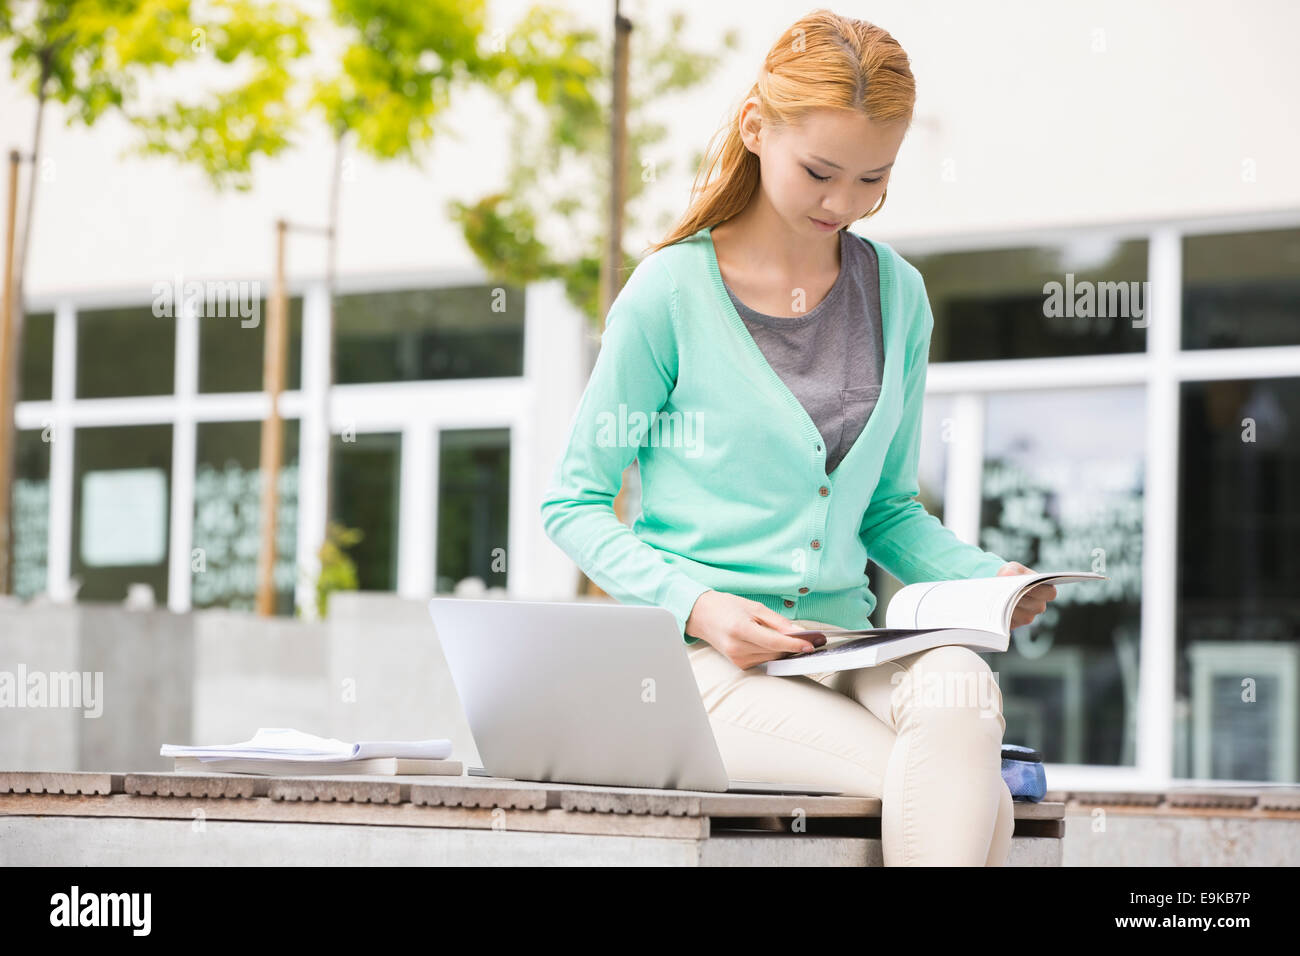 Young woman reading book at college campus - Stock Image